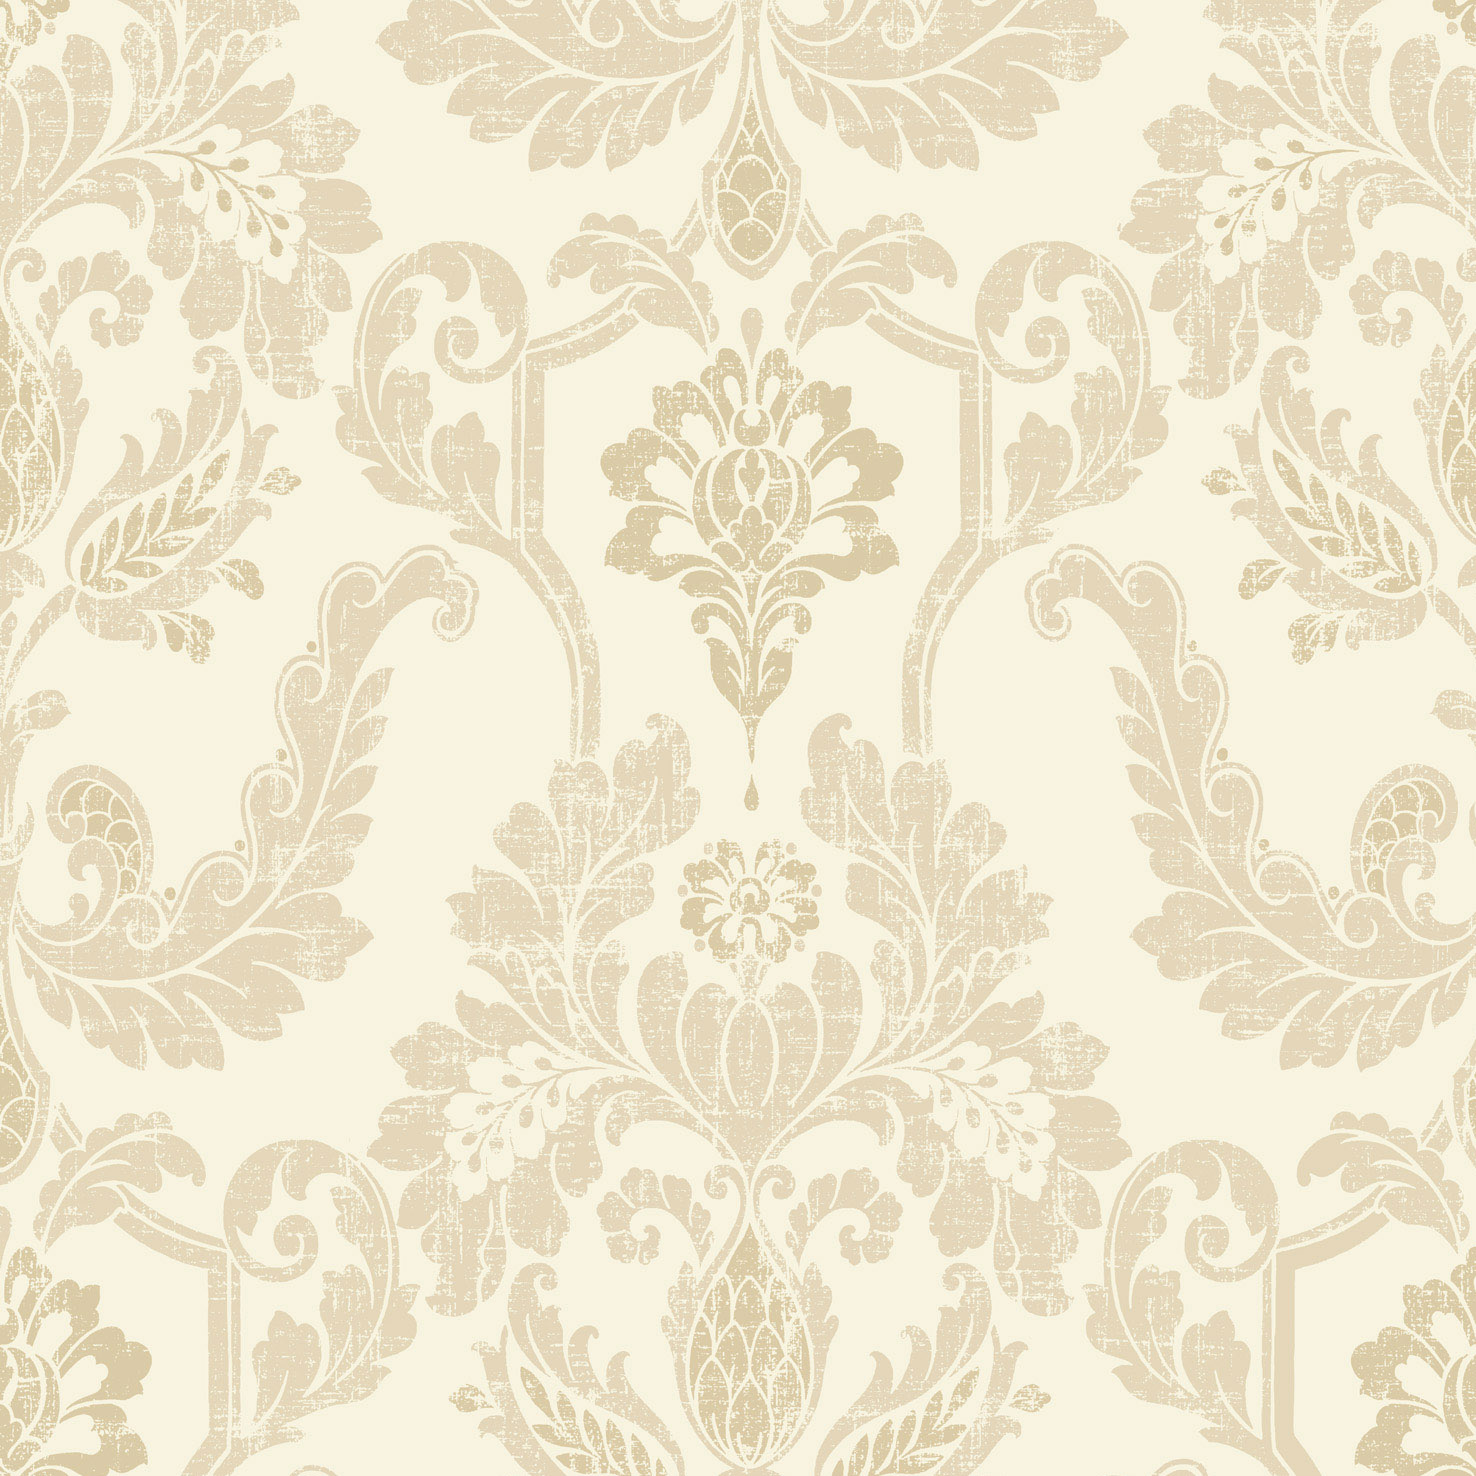 Cream And Gold Damask Wallpaper Feature wallpaper   product 1476x1476